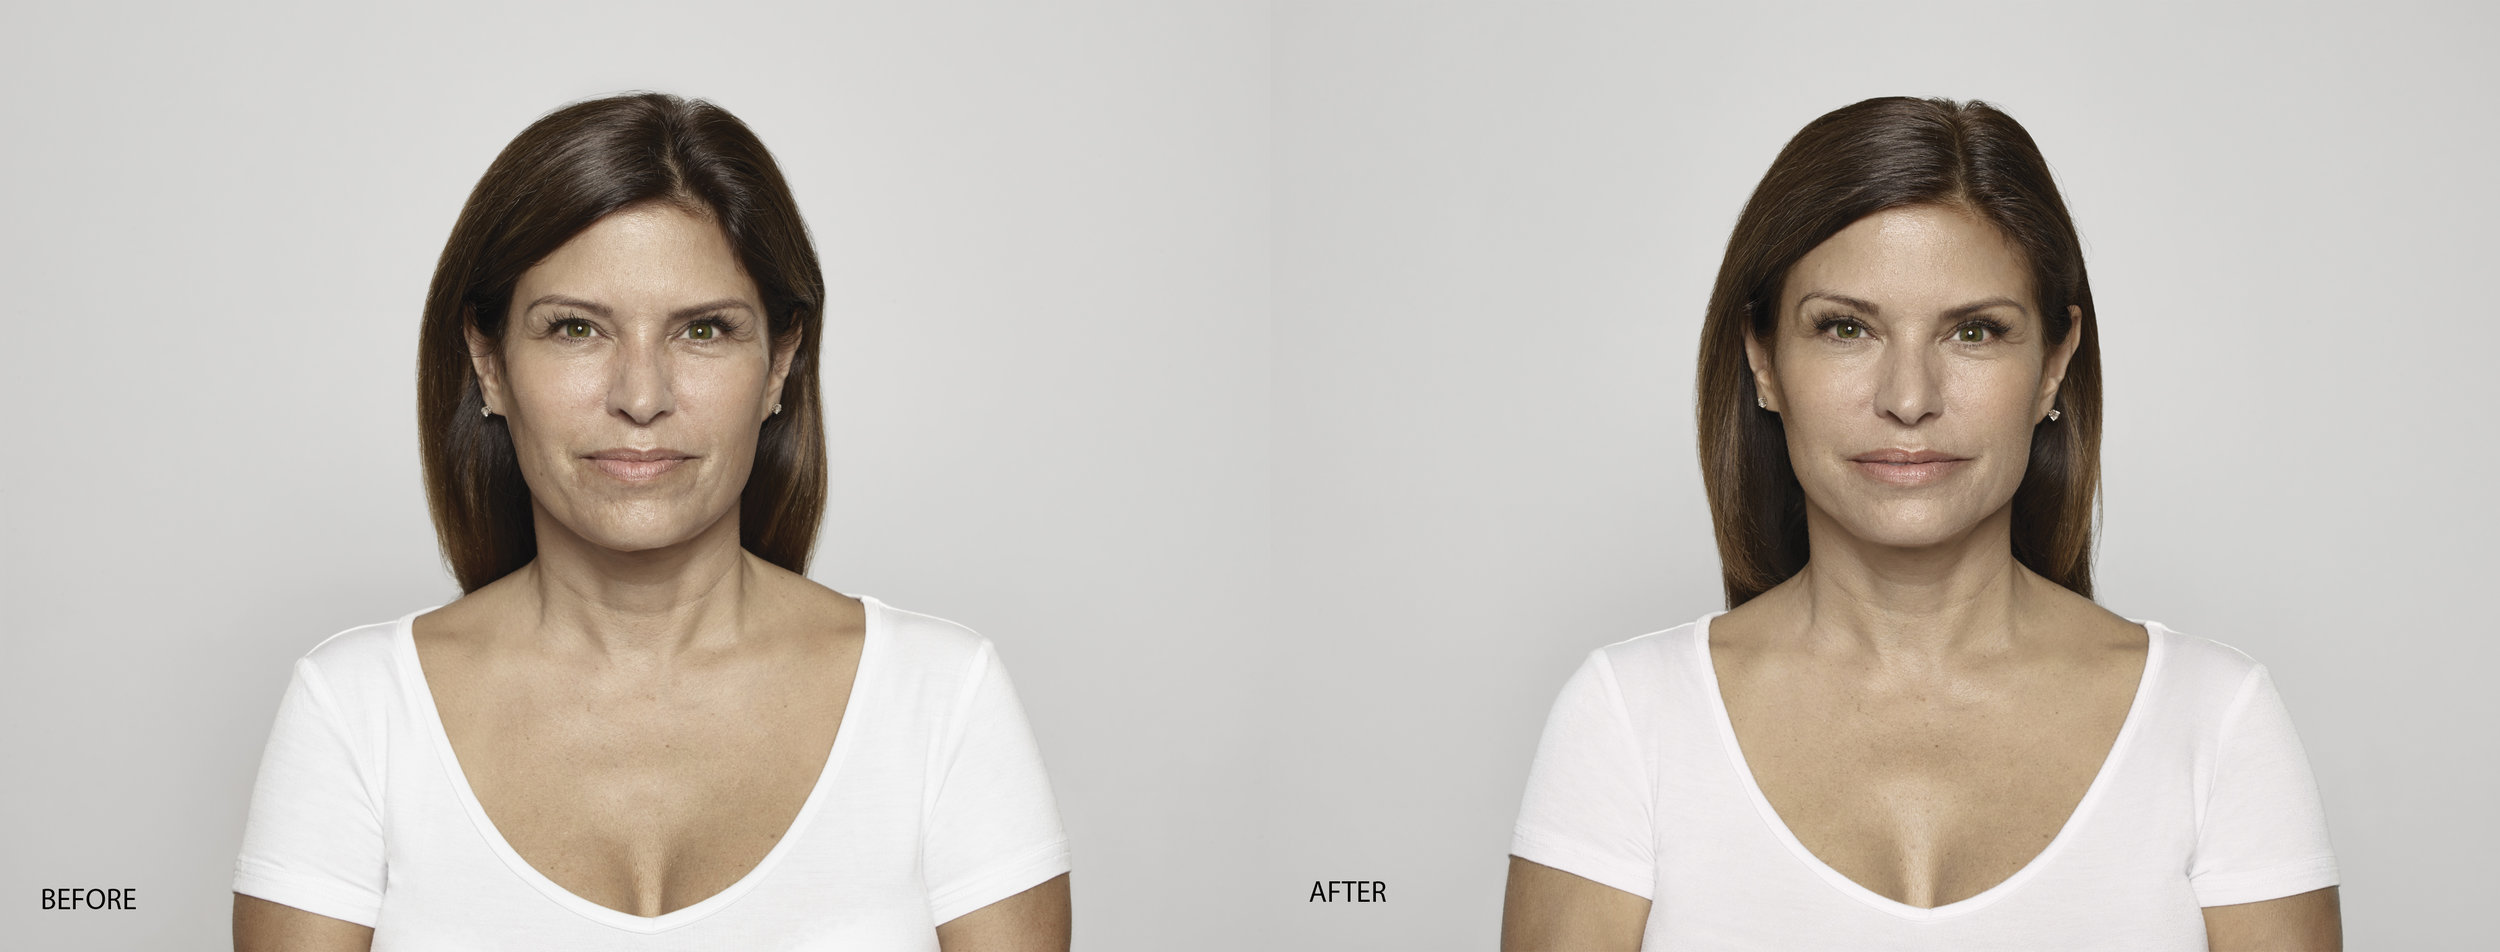 Victoria Before & AFTER.jpg